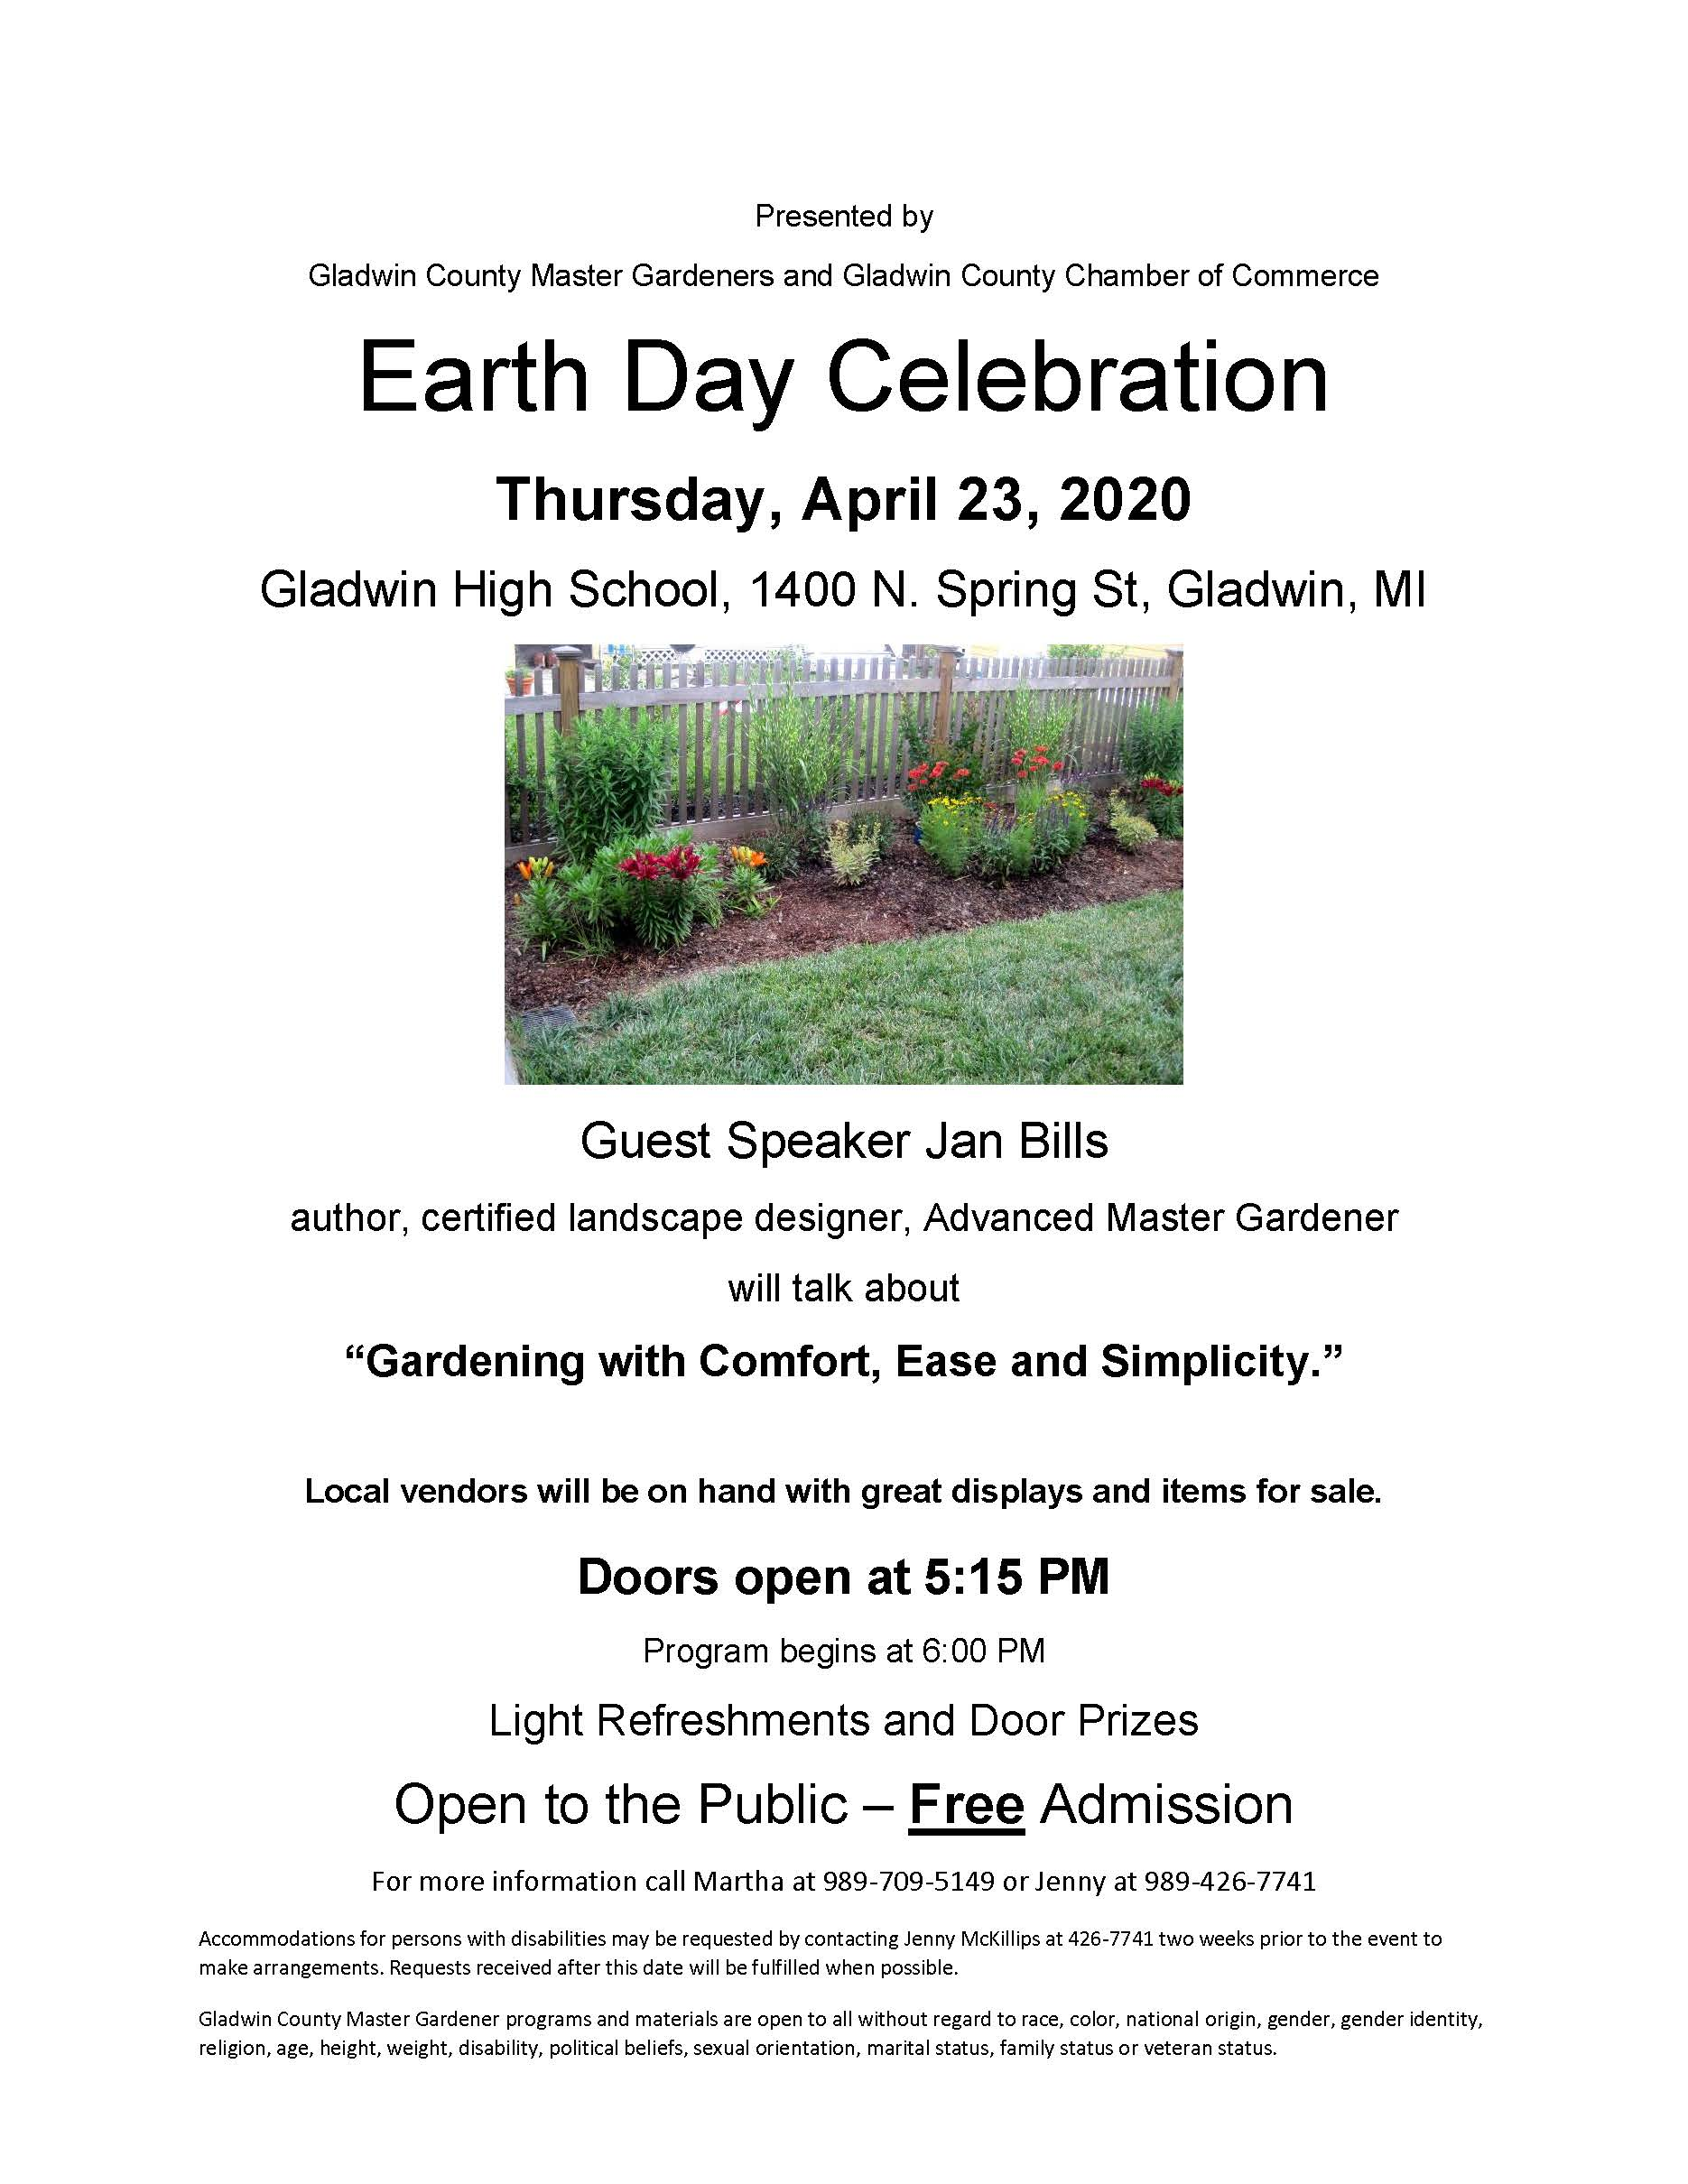 earthdayflier